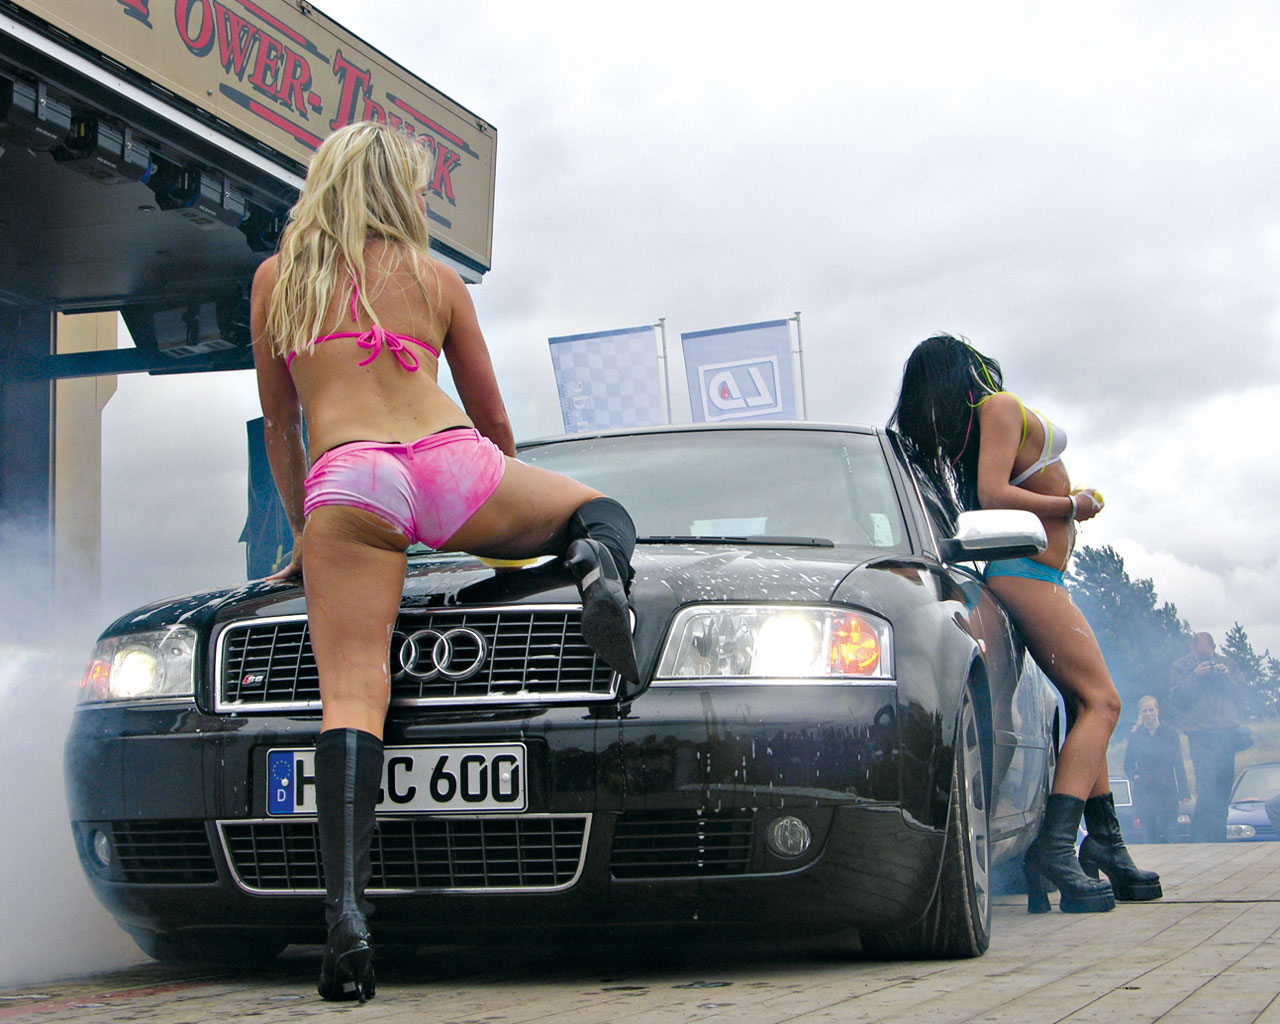 http://1.bp.blogspot.com/-5SK691mdpik/TiLpCgL612I/AAAAAAAAACc/MMR0y0BuoNA/s1600/Car_and_Girls_2681.jpg